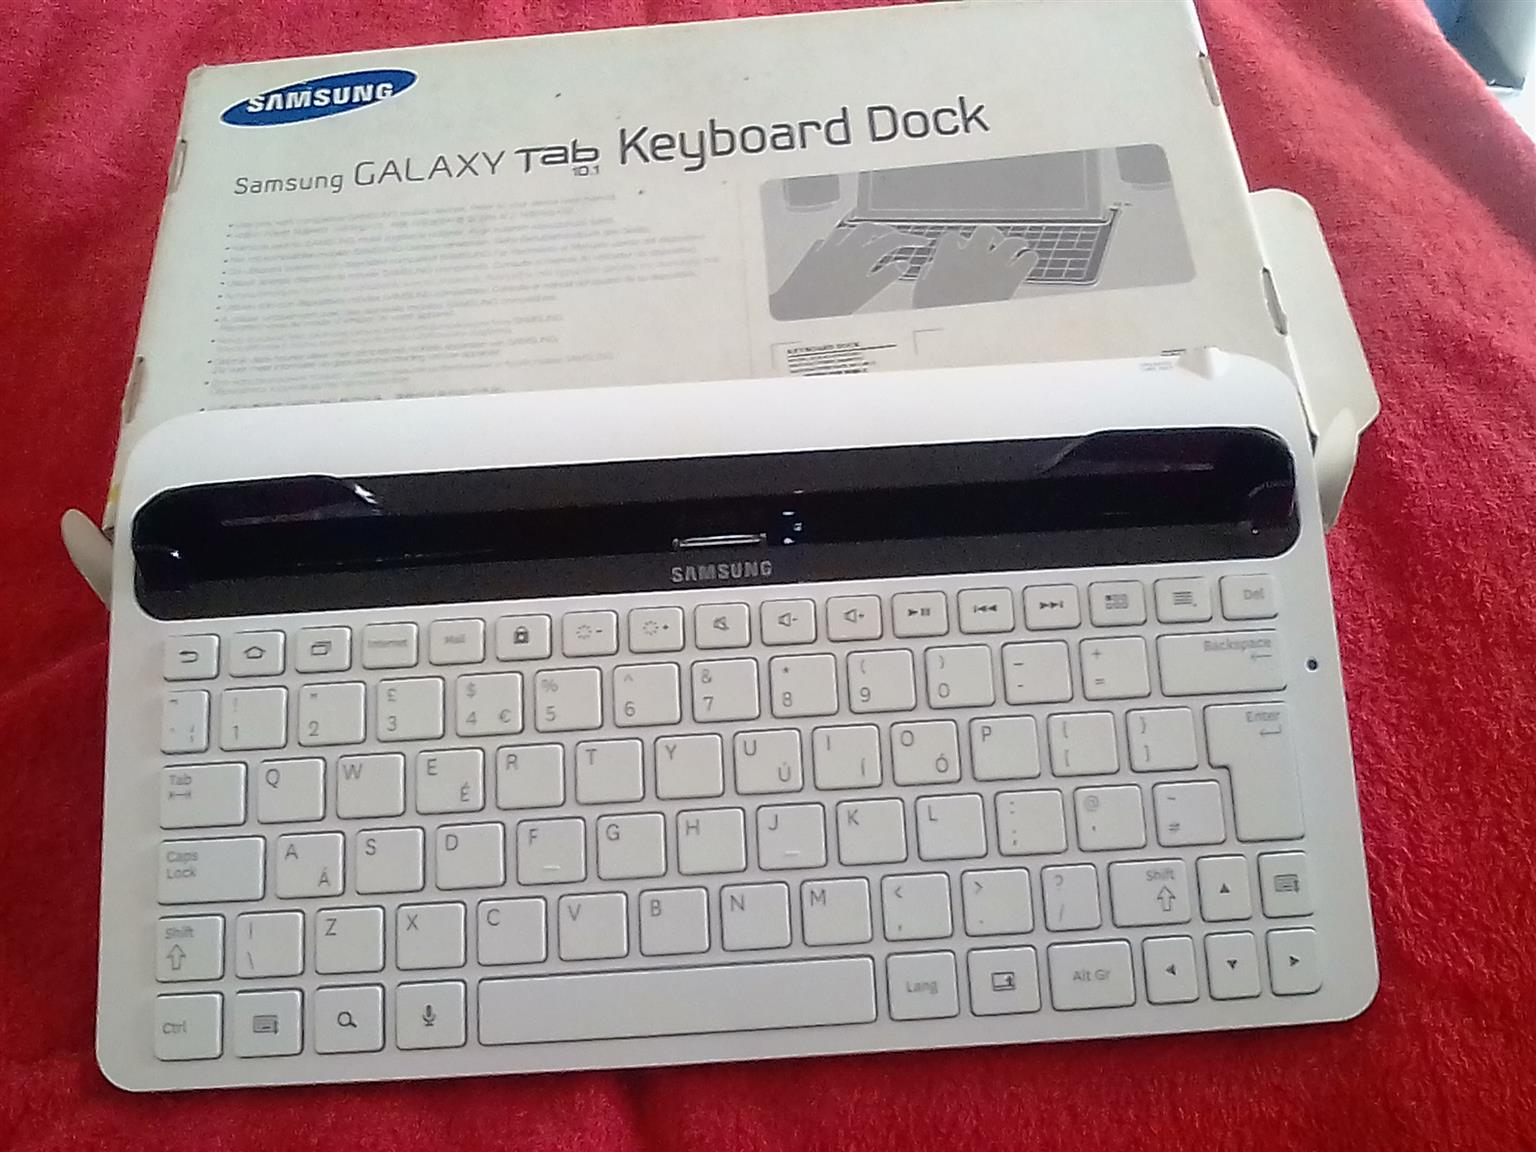 Samsung Galaxy 10.1 keybboard dock.